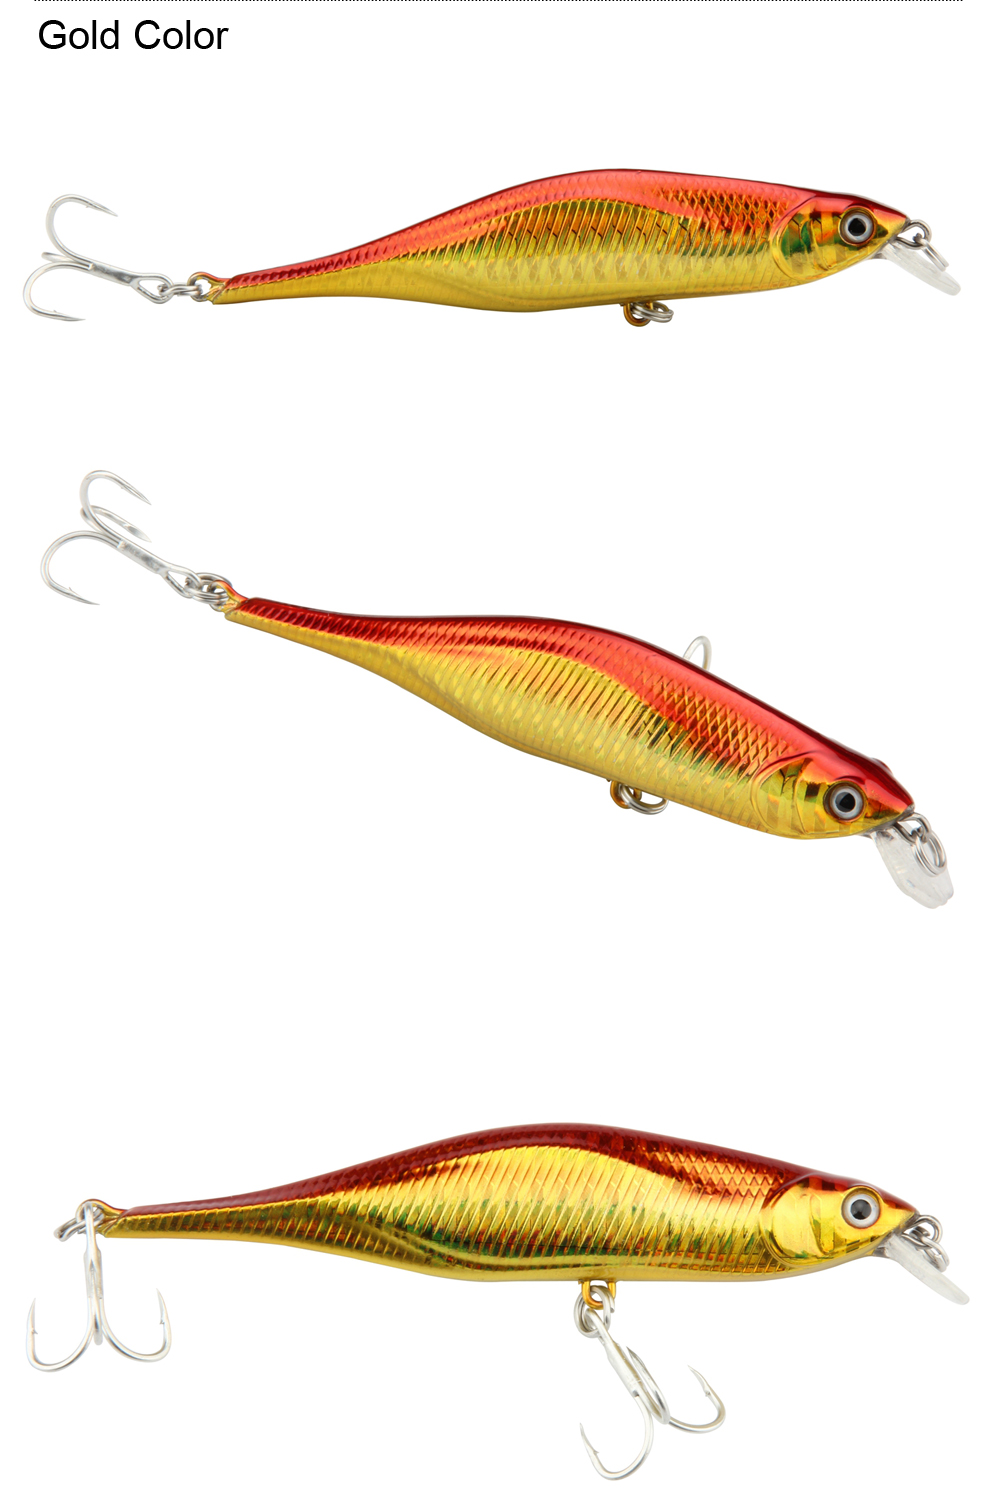 5pcsLot 11cm11g Mixed Colors ABS Minnow Fishing Lure Swimbait Crankbait Rigged With 2pcs High Carbon Steel Sharp Treble Hooks (7)